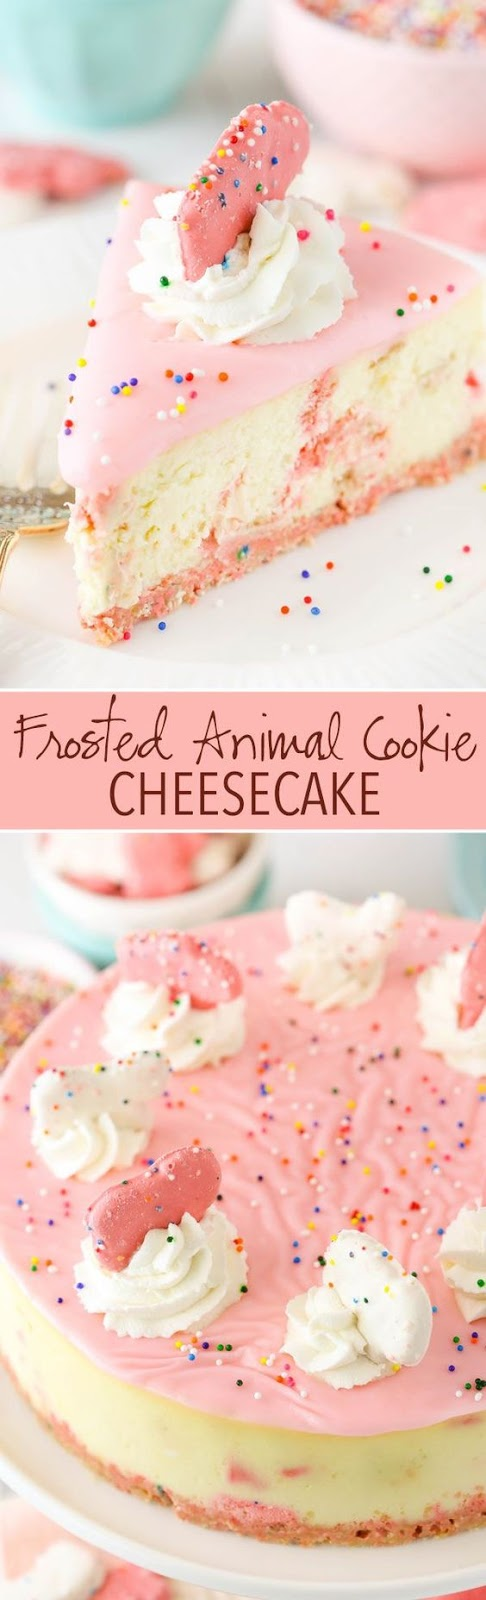 Photo of Frosted Animal Cookie Cheesecake